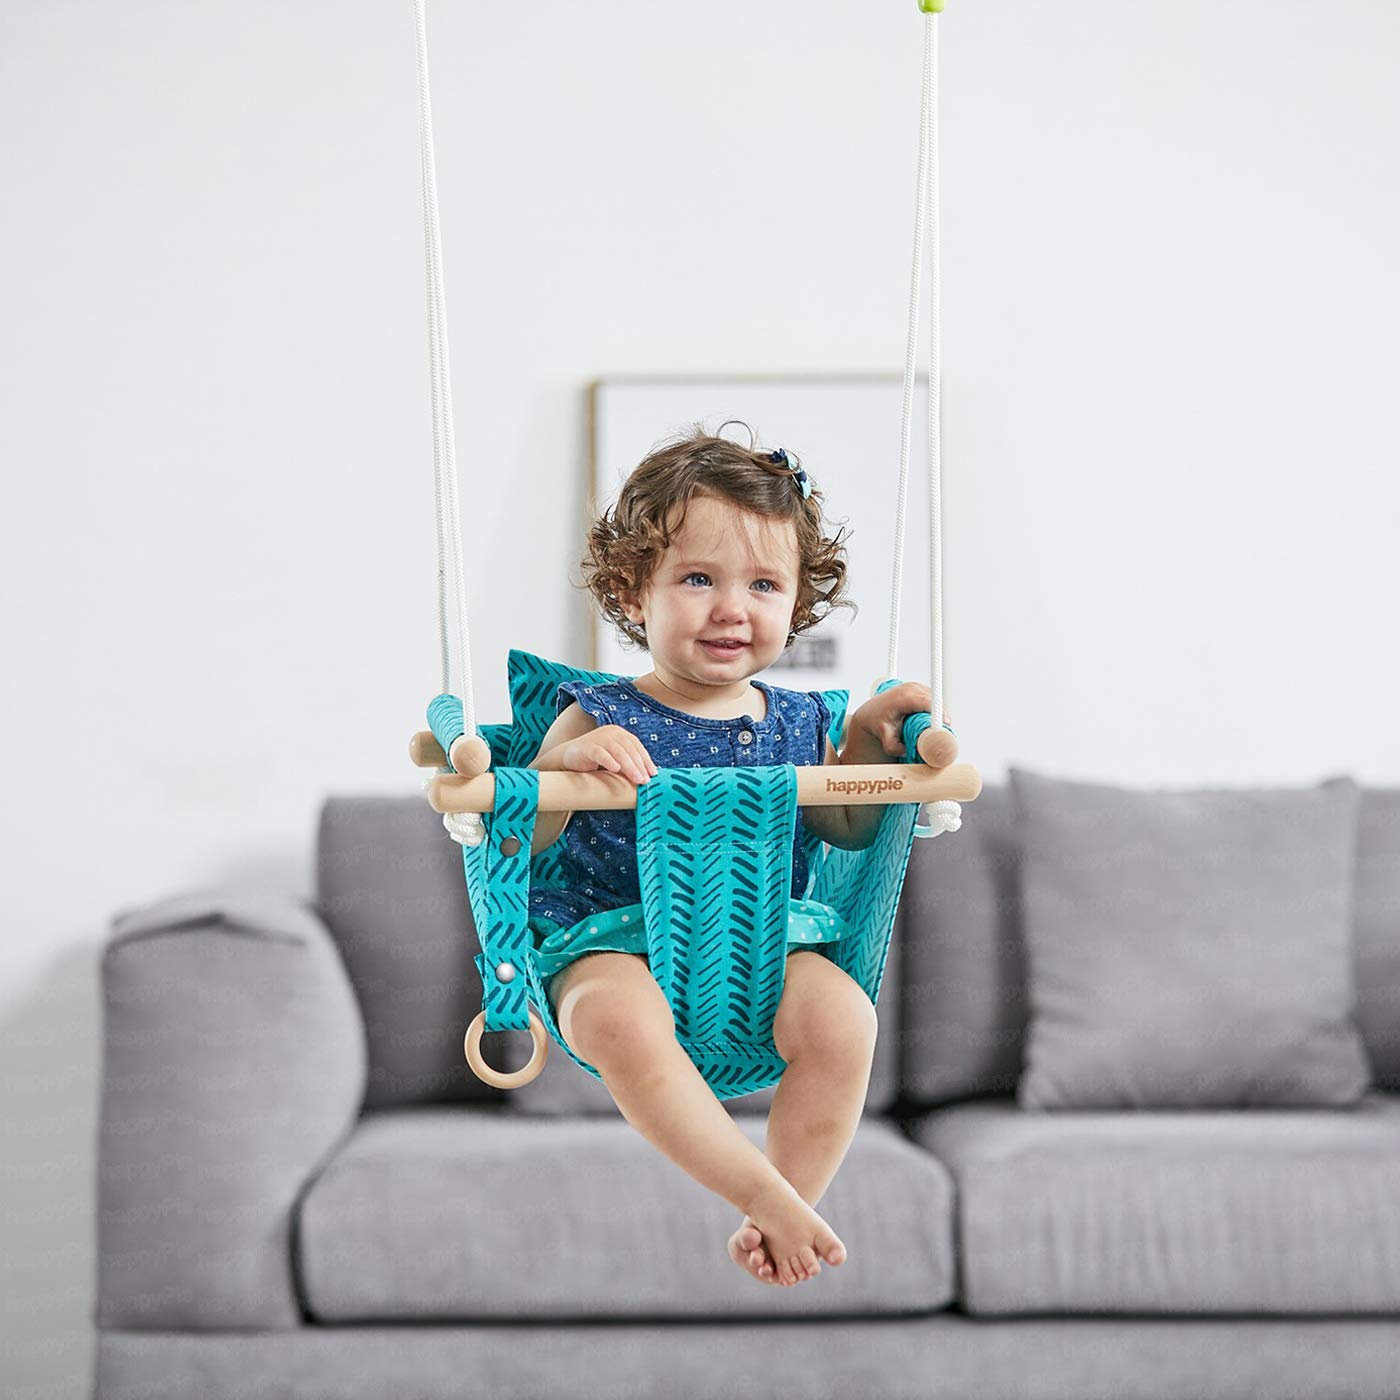 HAPPY PIE PLAY/&ADVENTURE Secure Canvas Hanging Swing Seat Indoor Outdoor Hammock Toy for Toddler Bright Green